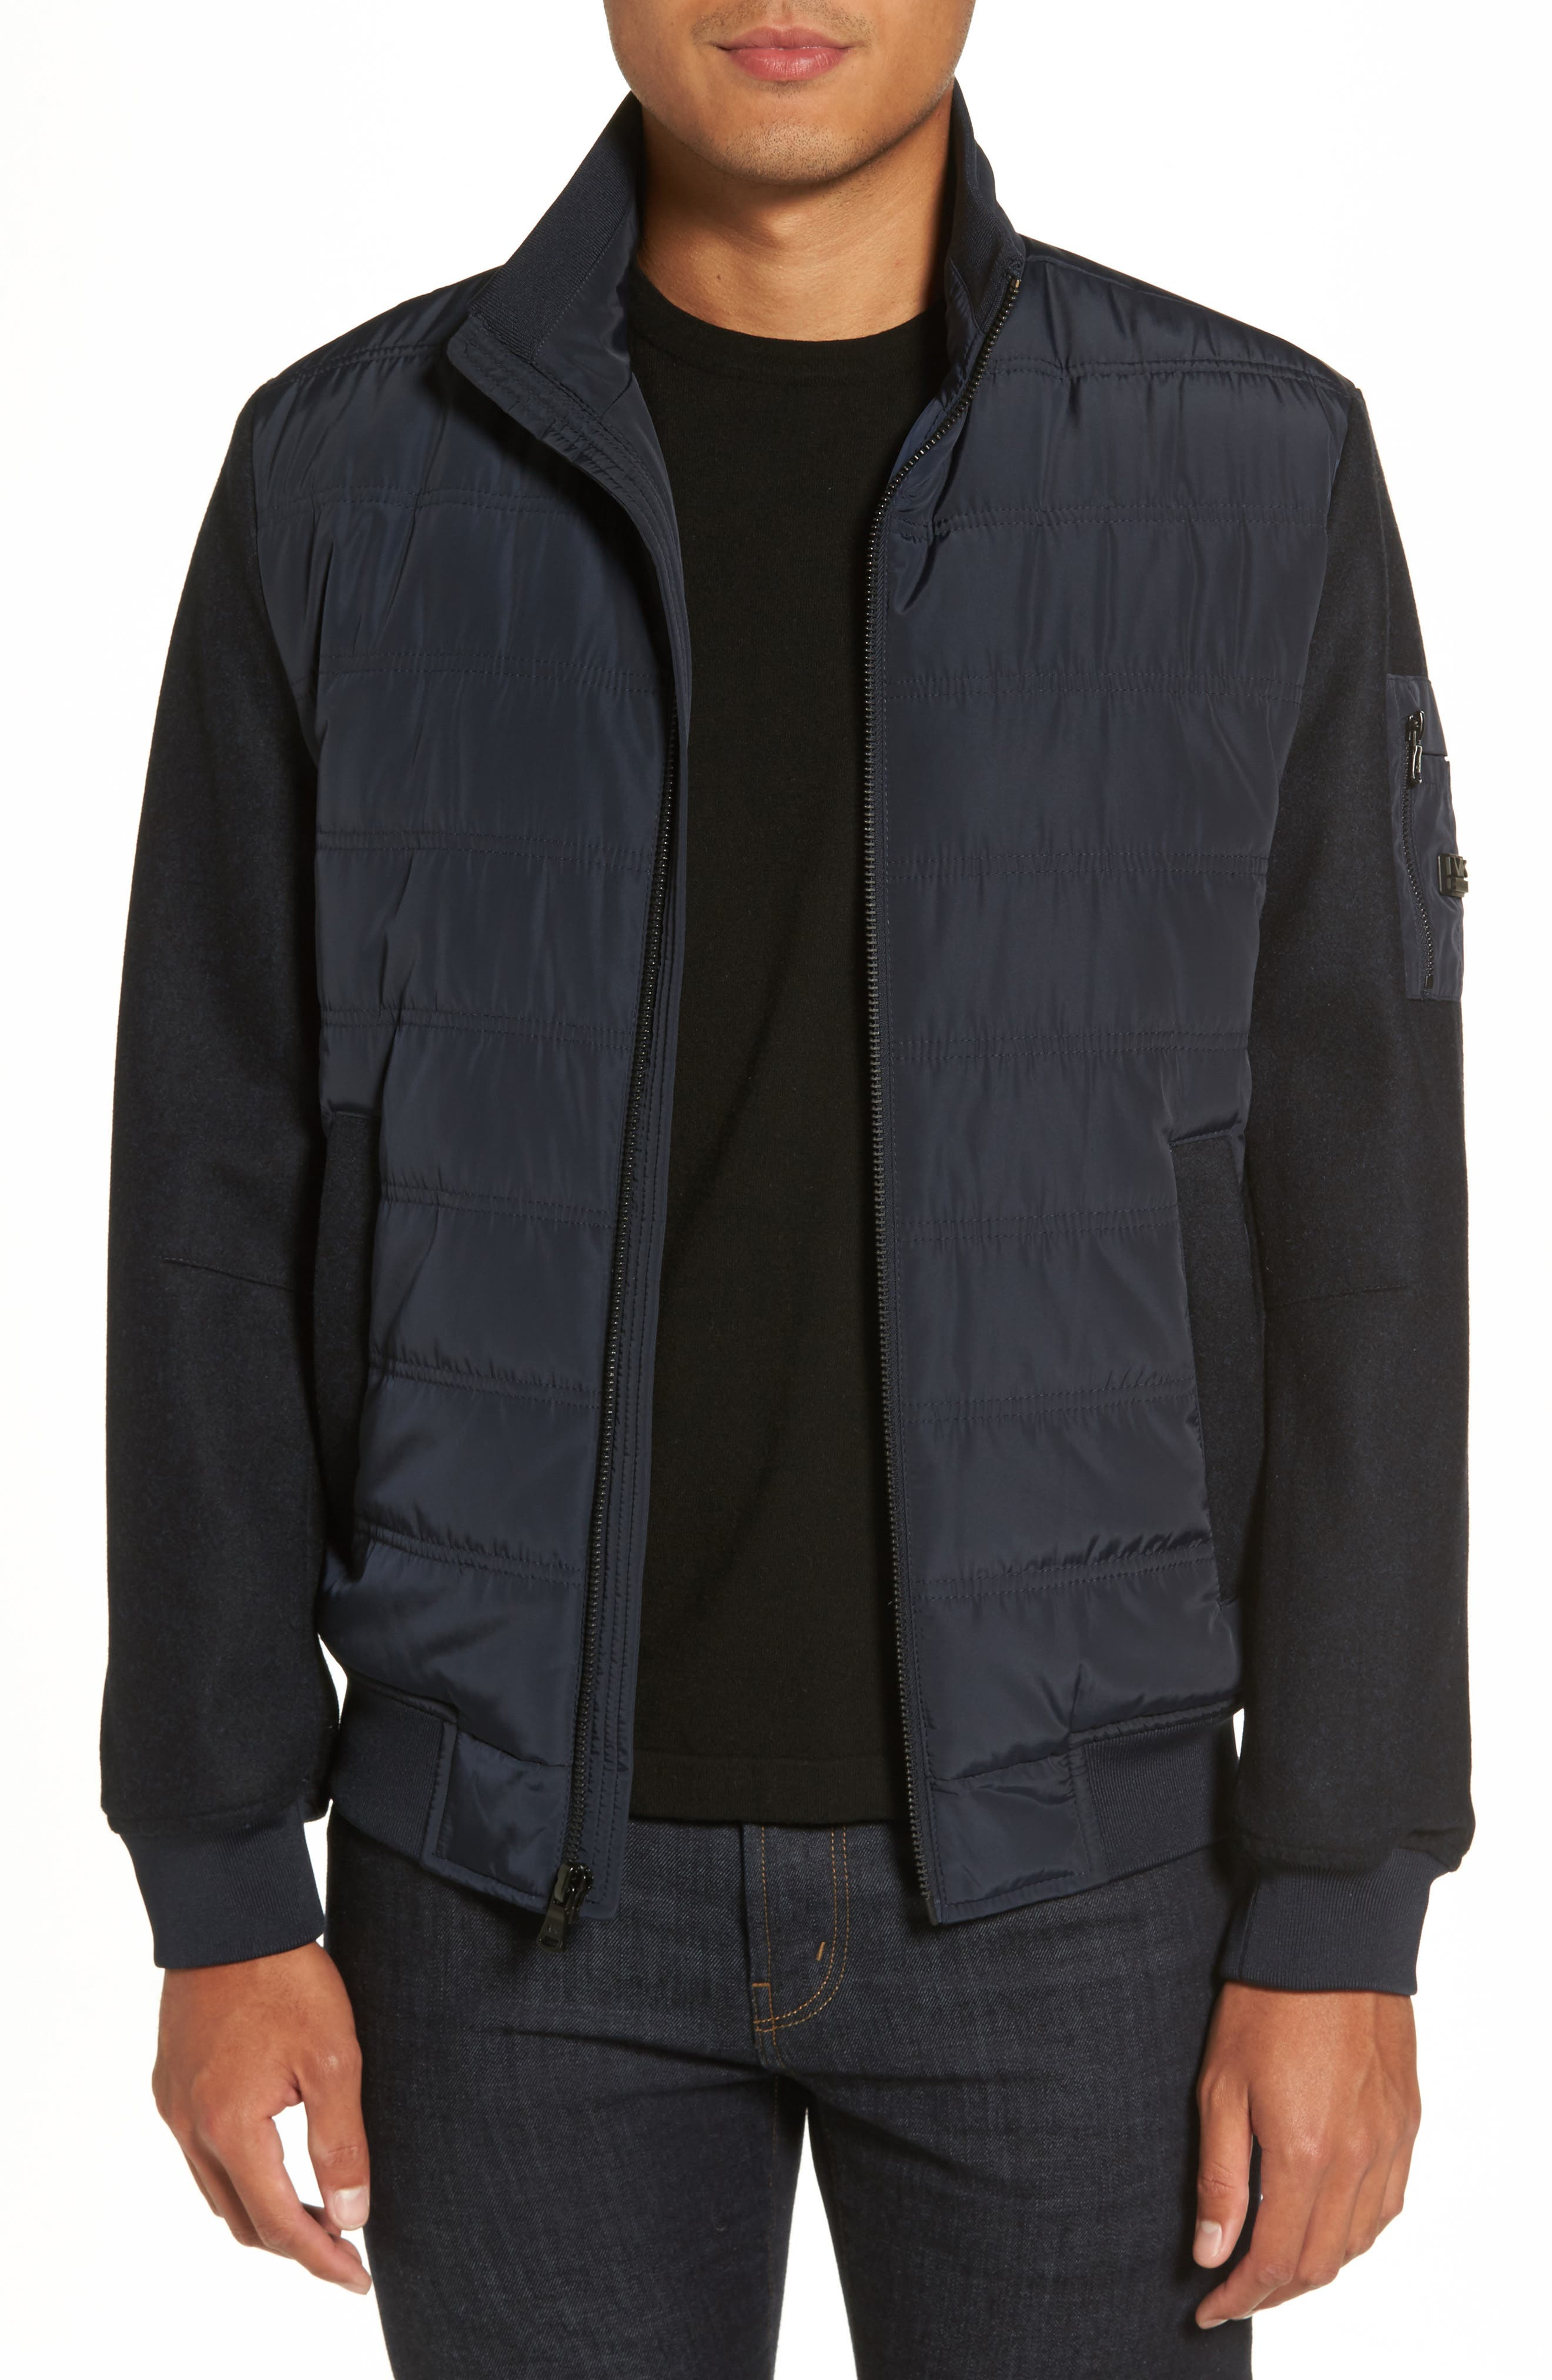 Michael Kors Mixed Media Quilted Jacket